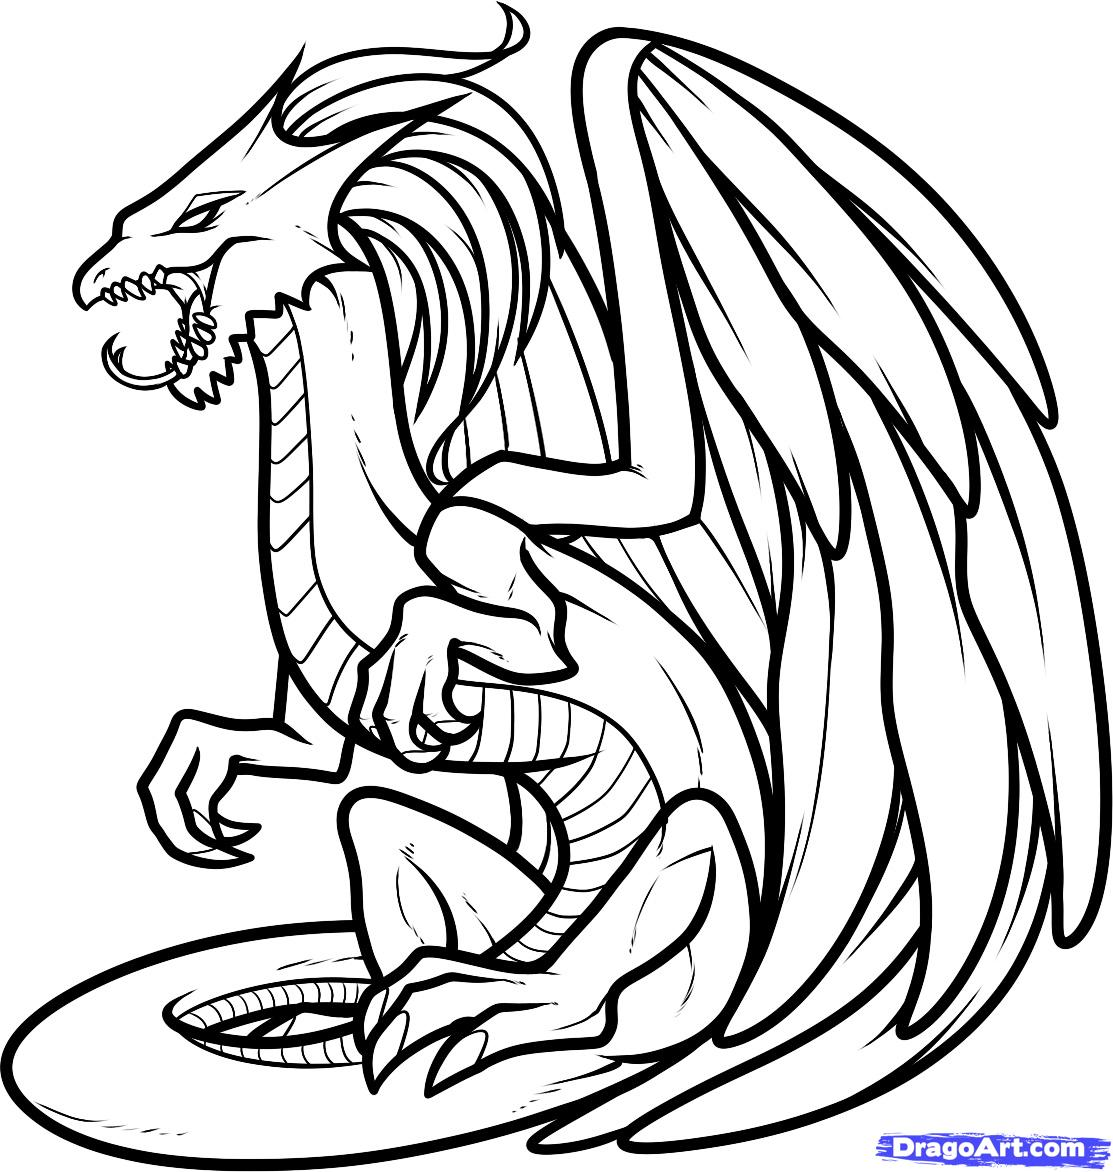 printable dragon color the dragon coloring pages in websites printable dragon